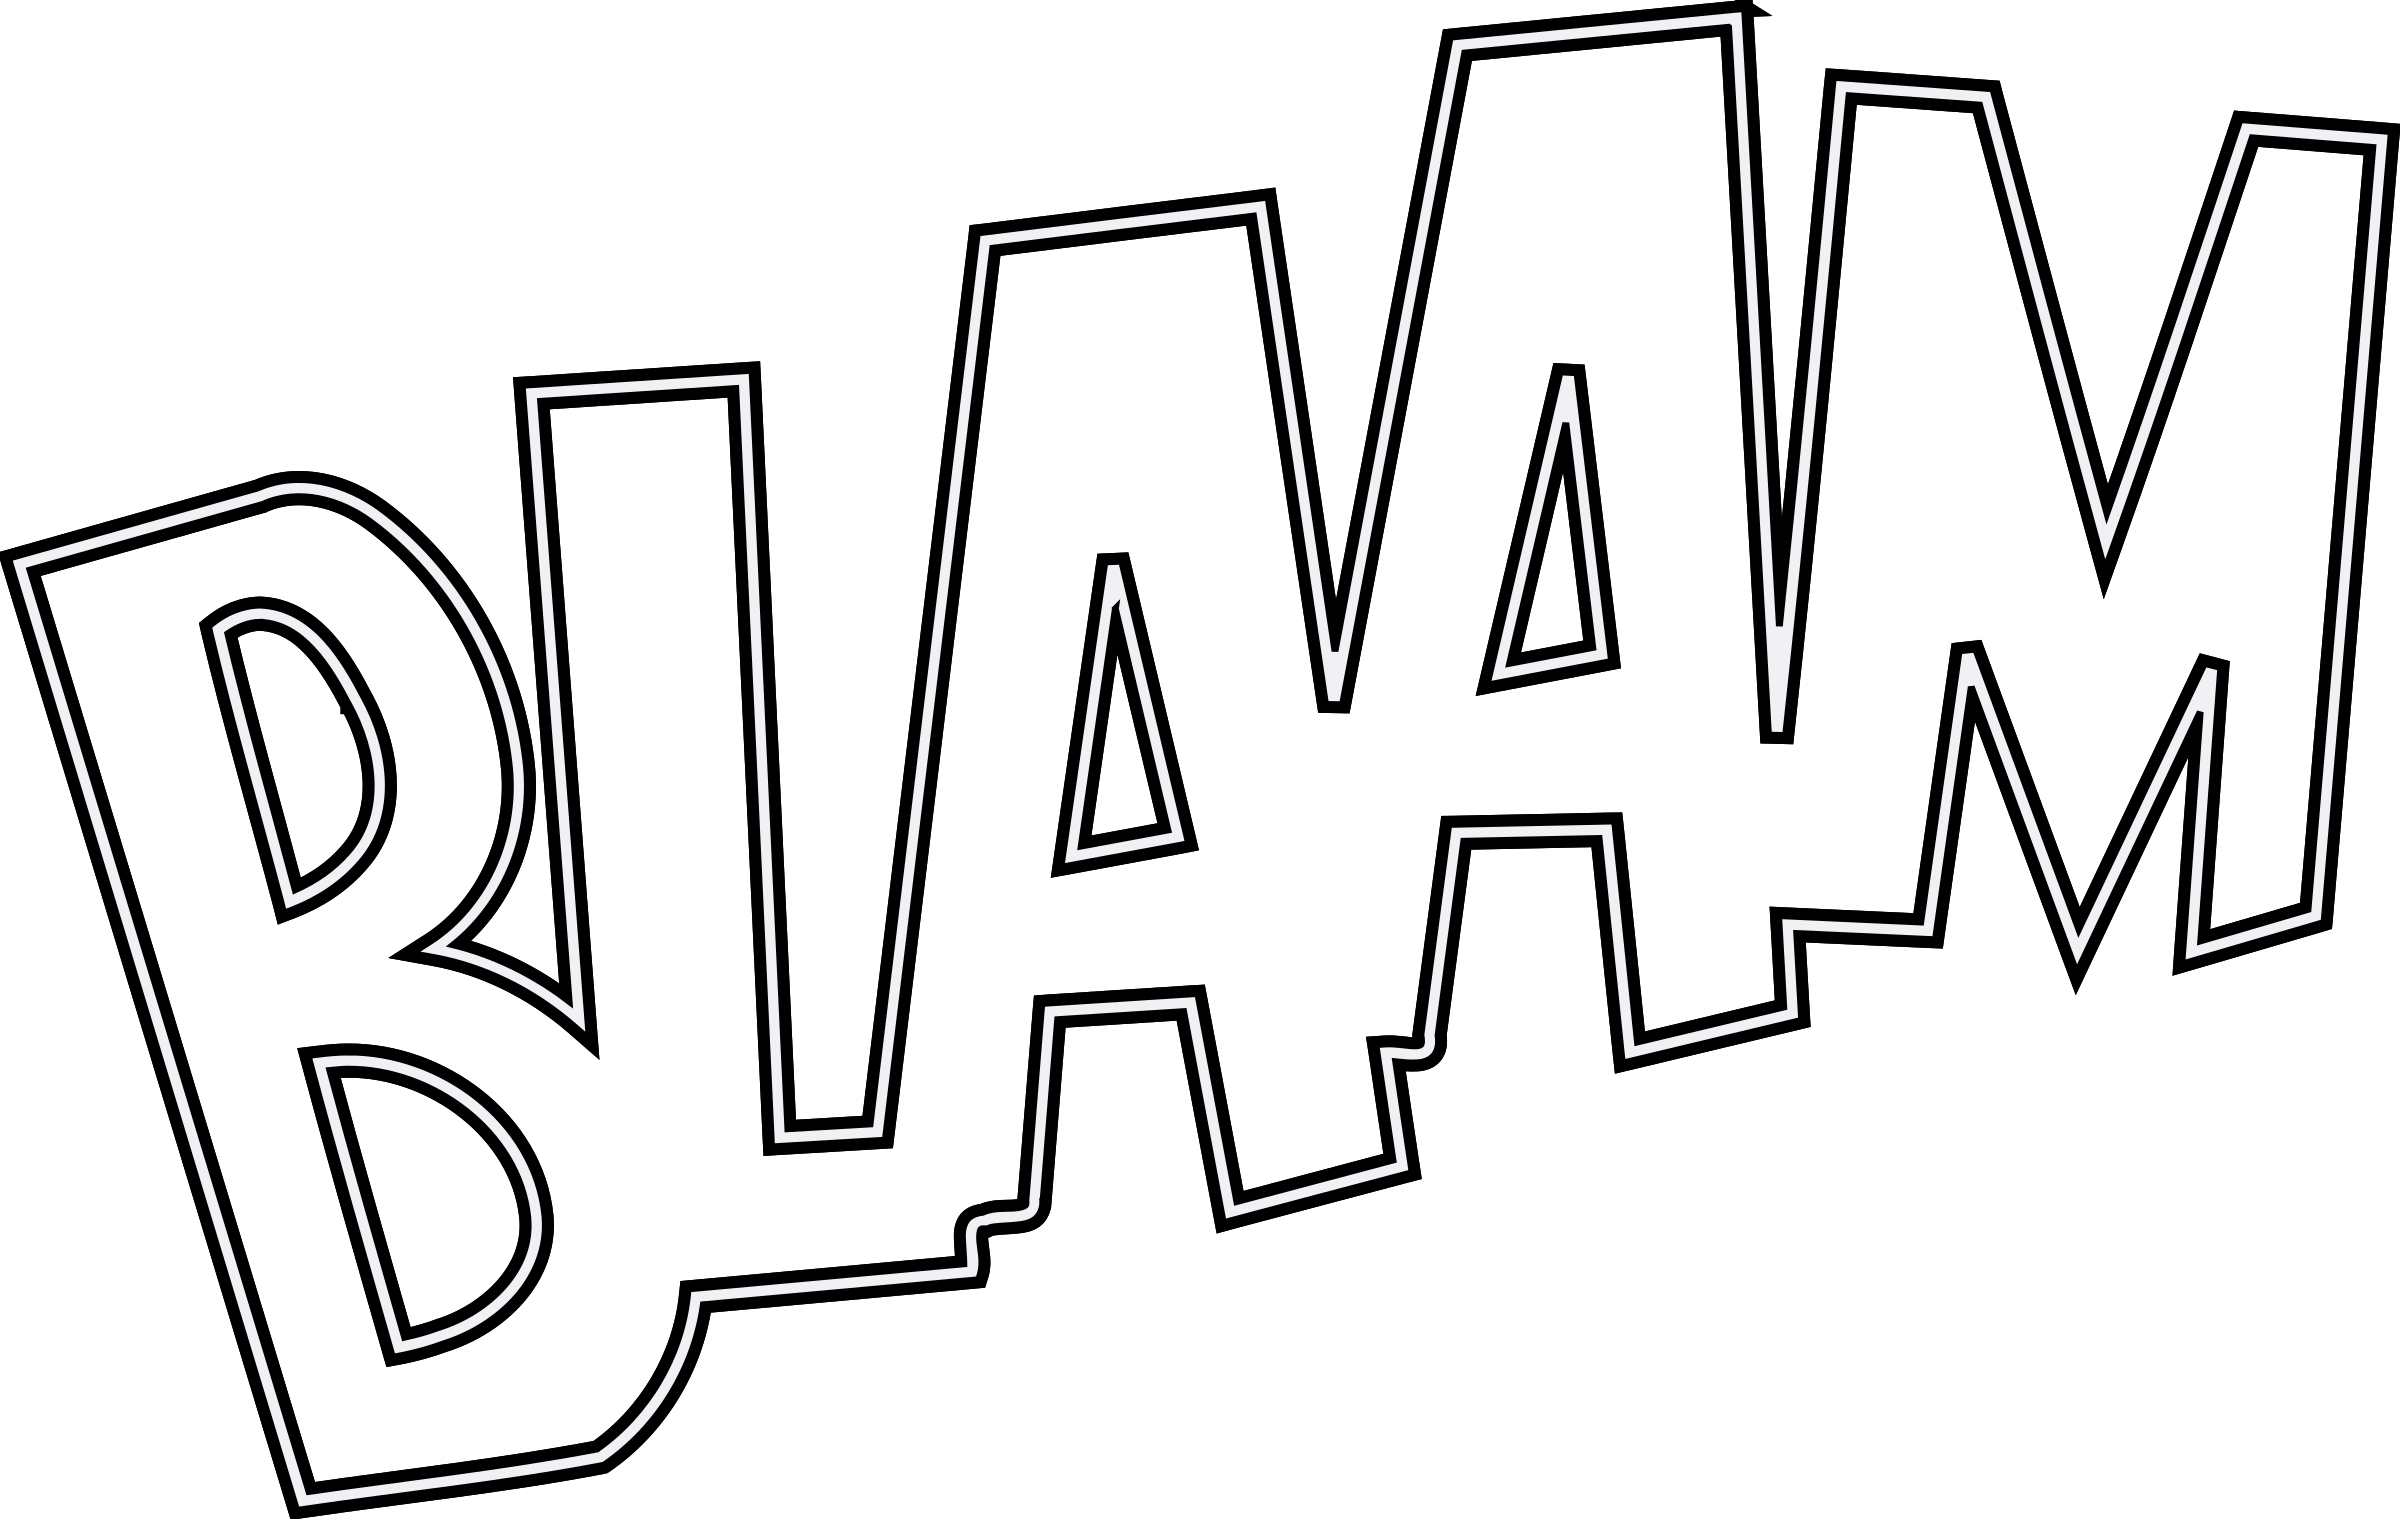 BLAAM outlined by dominiquechappard